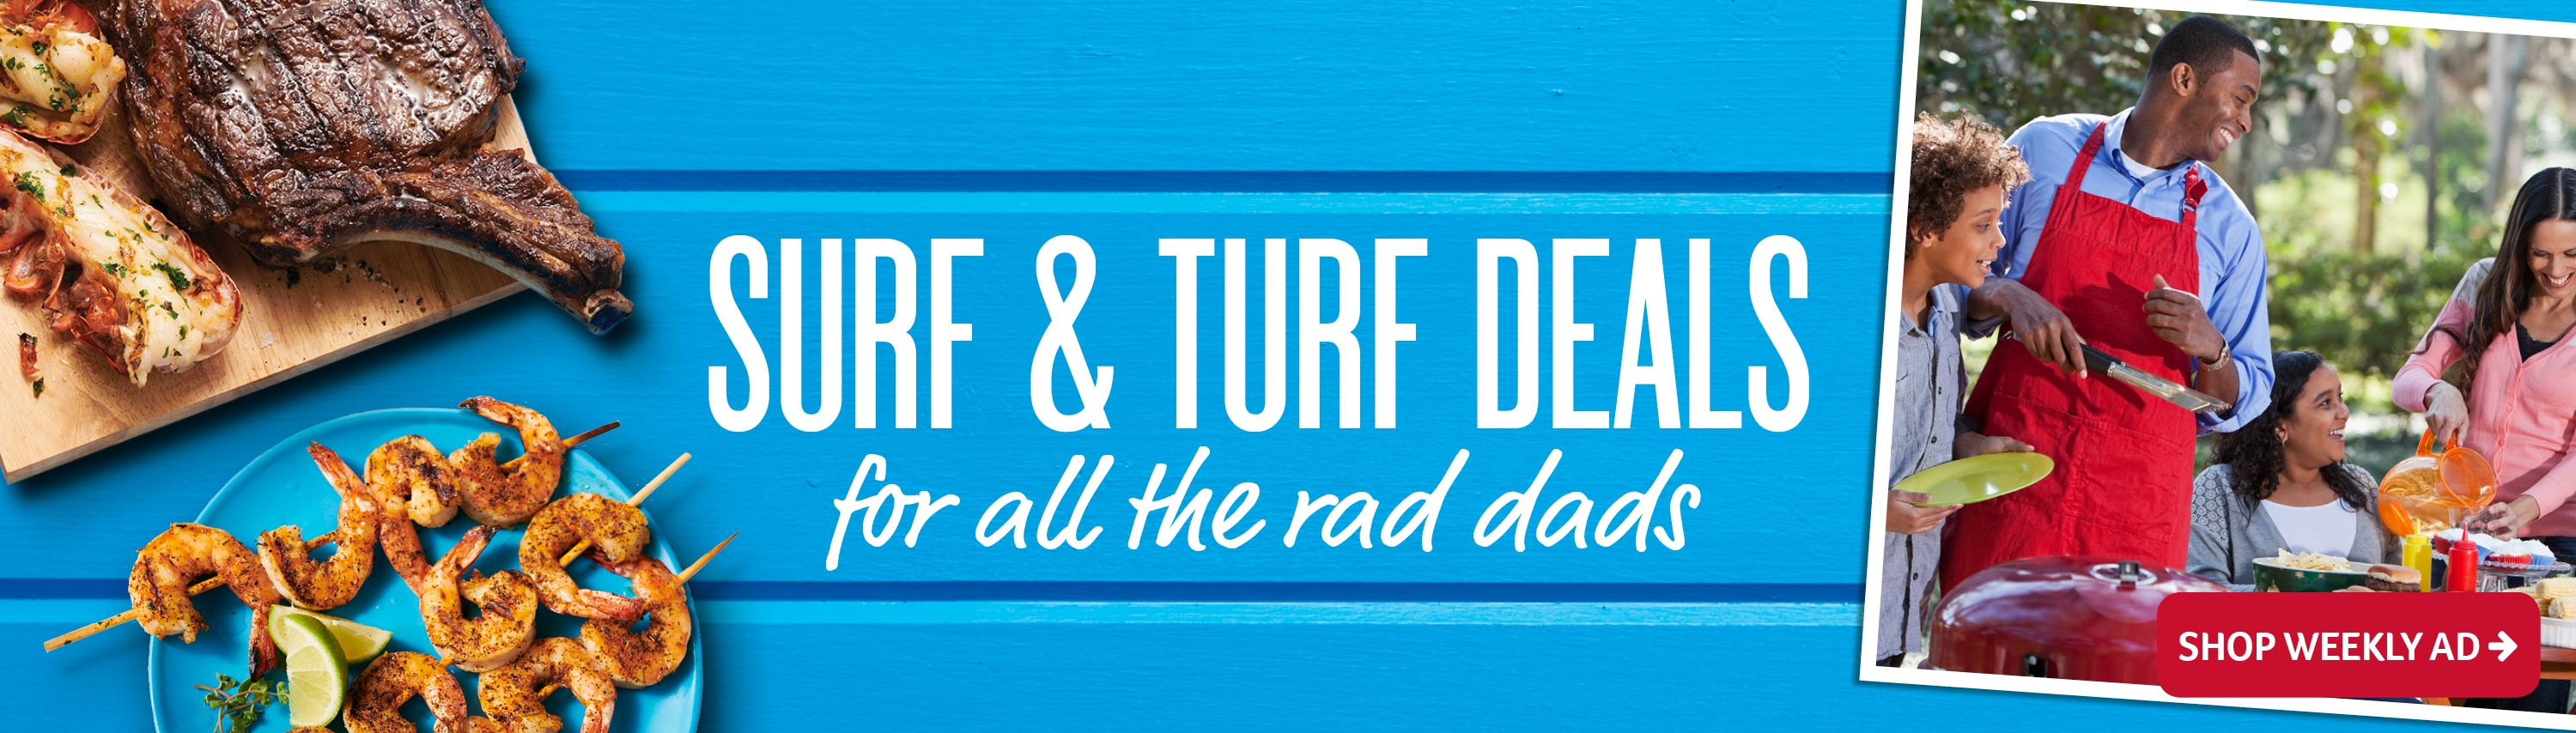 surf and turf deals for all the rad dads